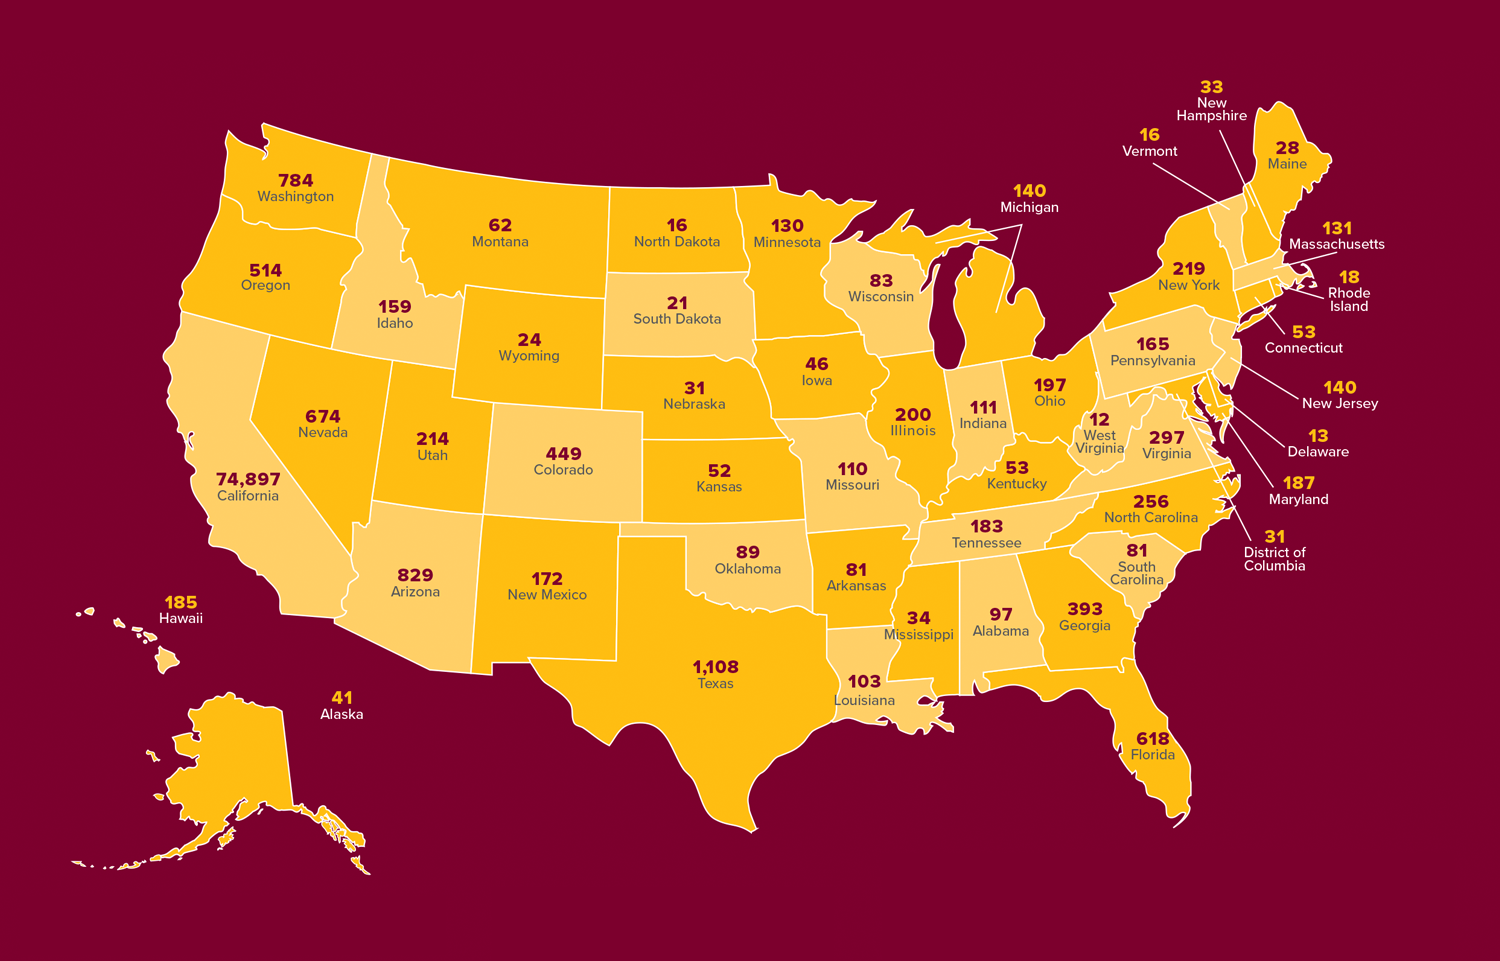 Map of alumni counts across US states